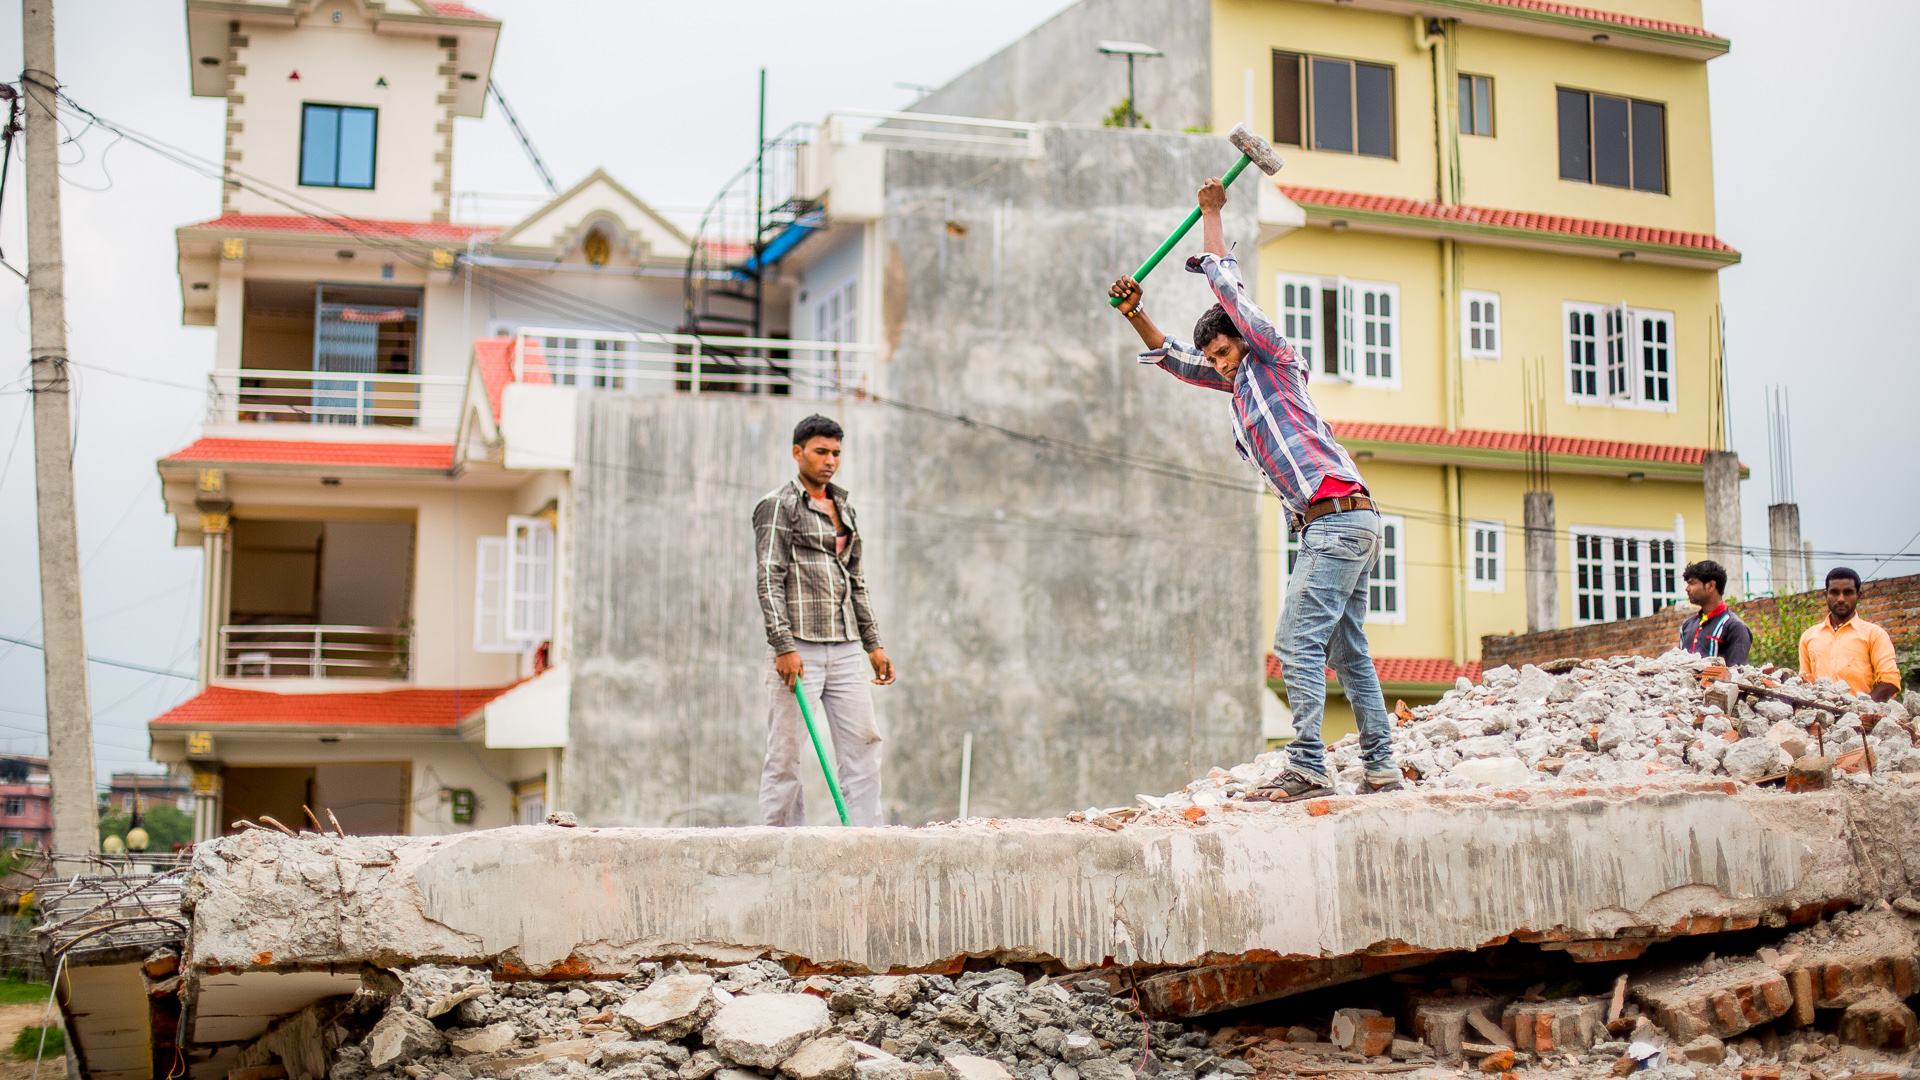 Demolishing concrete floors by hand that had collapsed during the earthquakes.